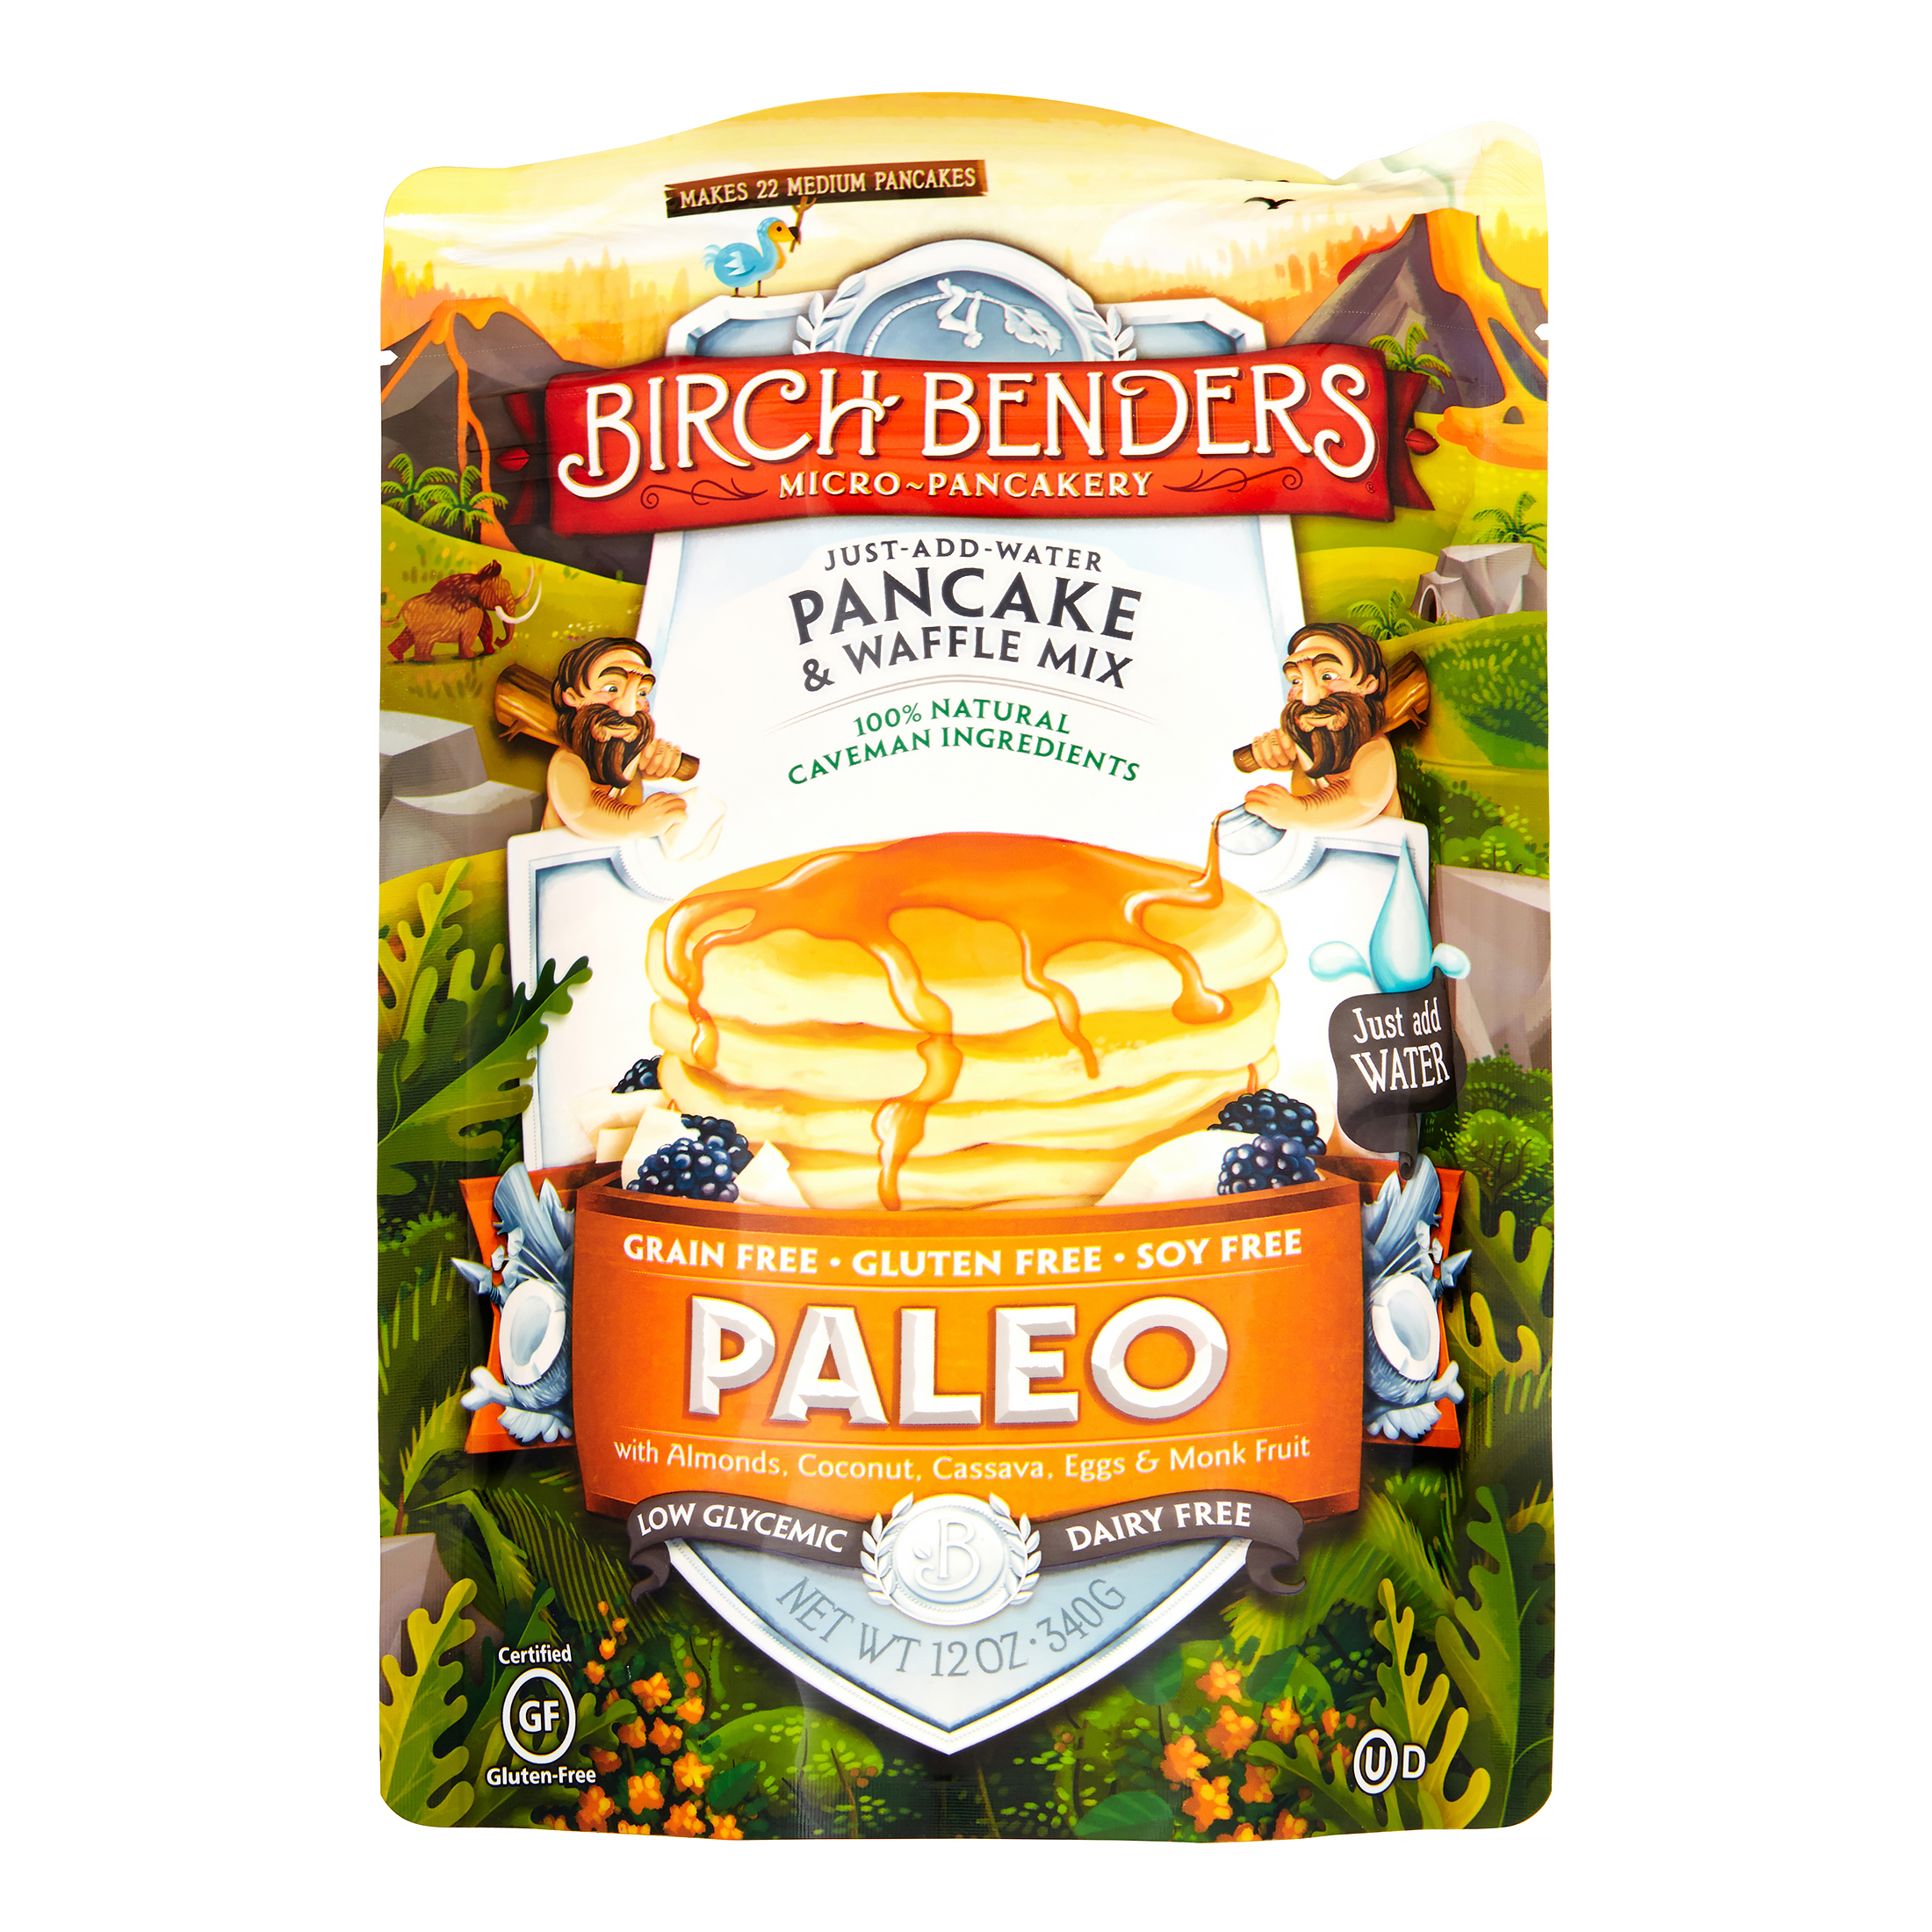 Birch Benders Paleo Pancake & Waffle Mix, 12 Oz, 1 Count